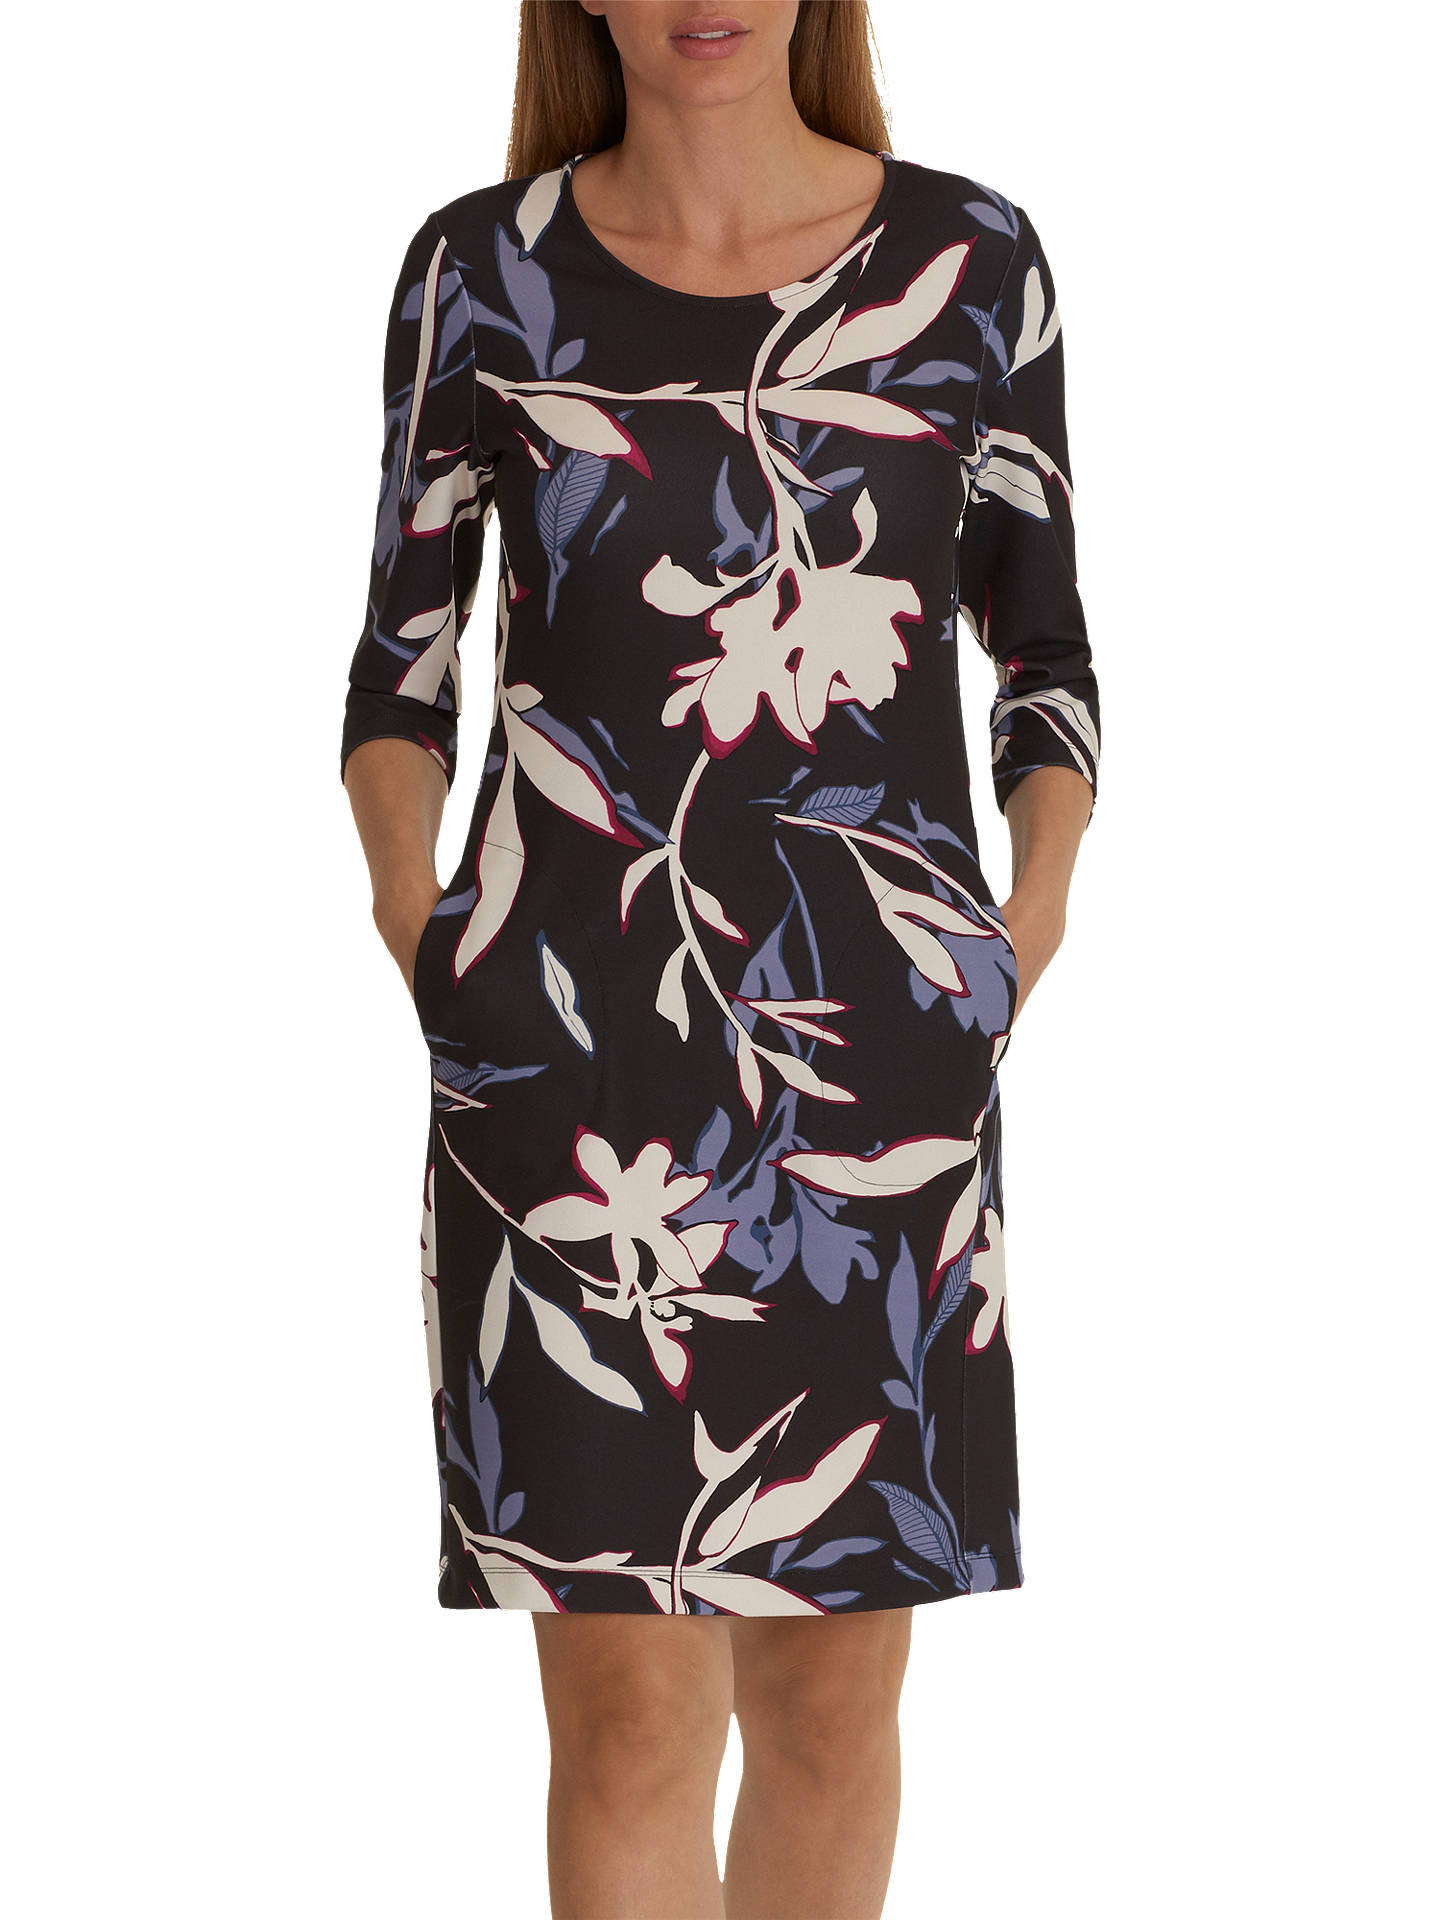 BuyBetty & Co. Floral Print Jersey Dress, Grey/Cream, 10 Online at johnlewis.com